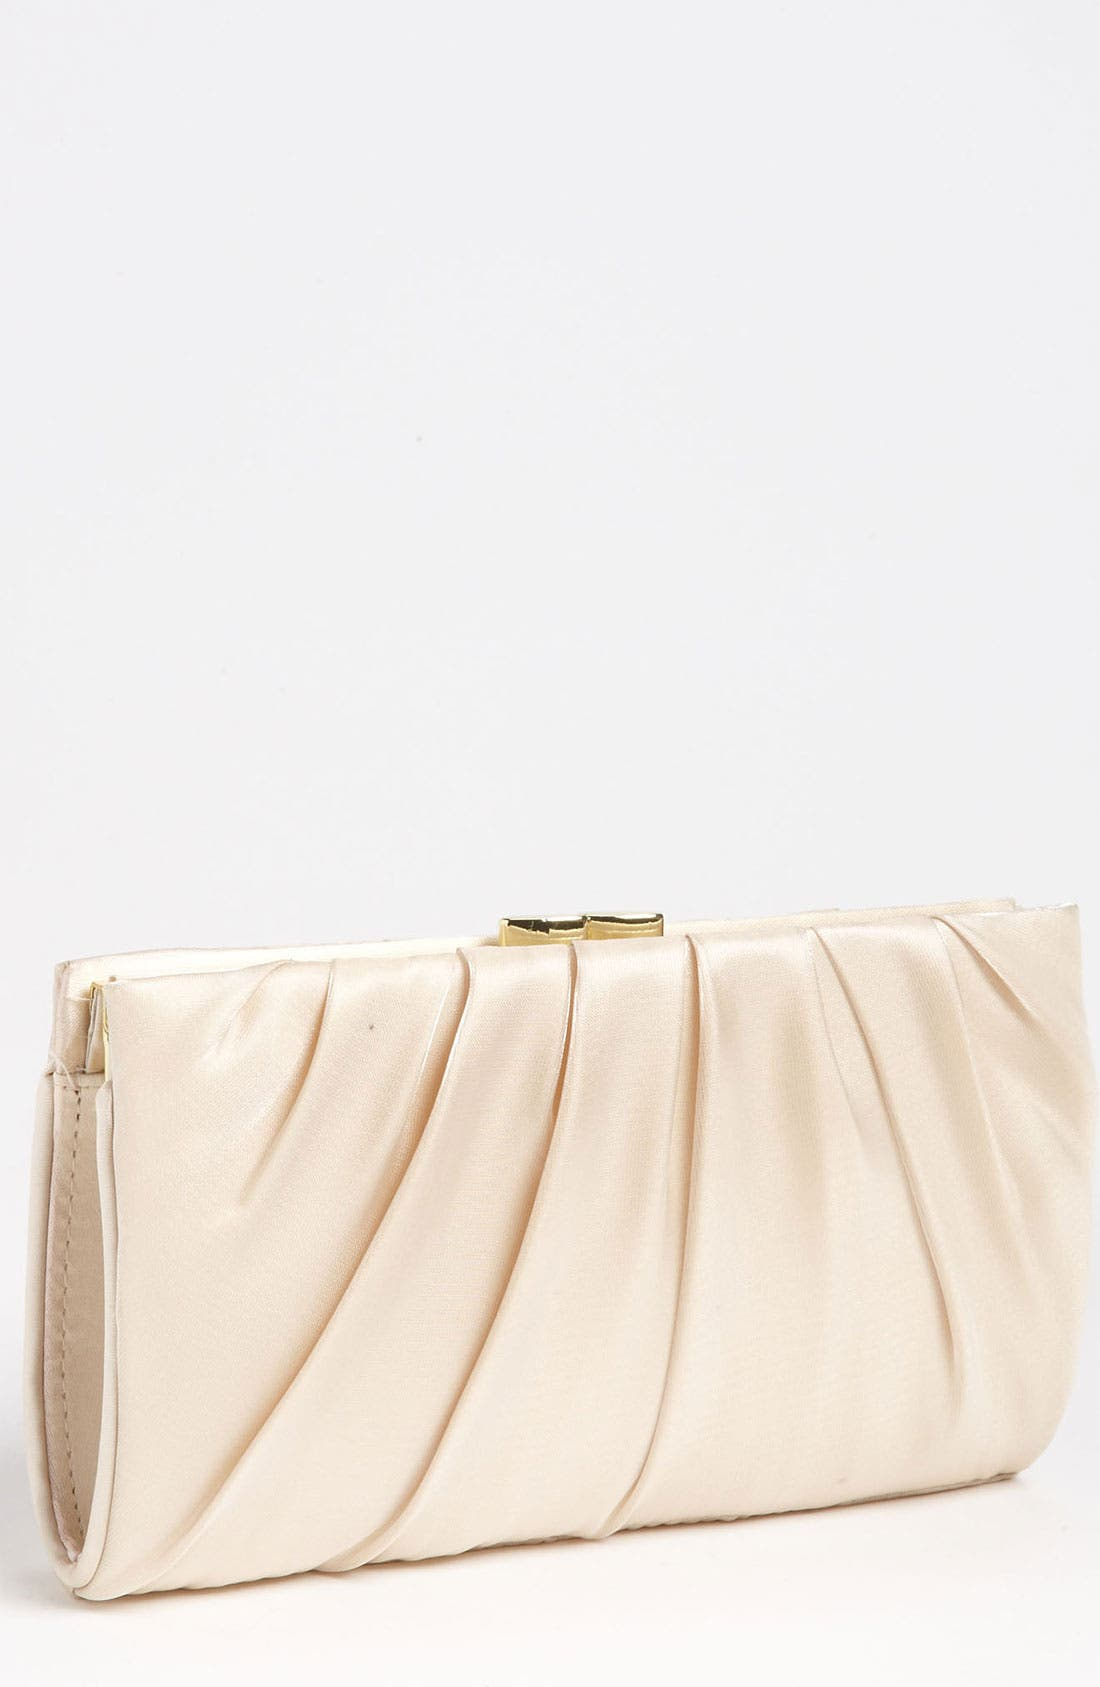 Main Image - Nina 'Larry' Satin Clutch